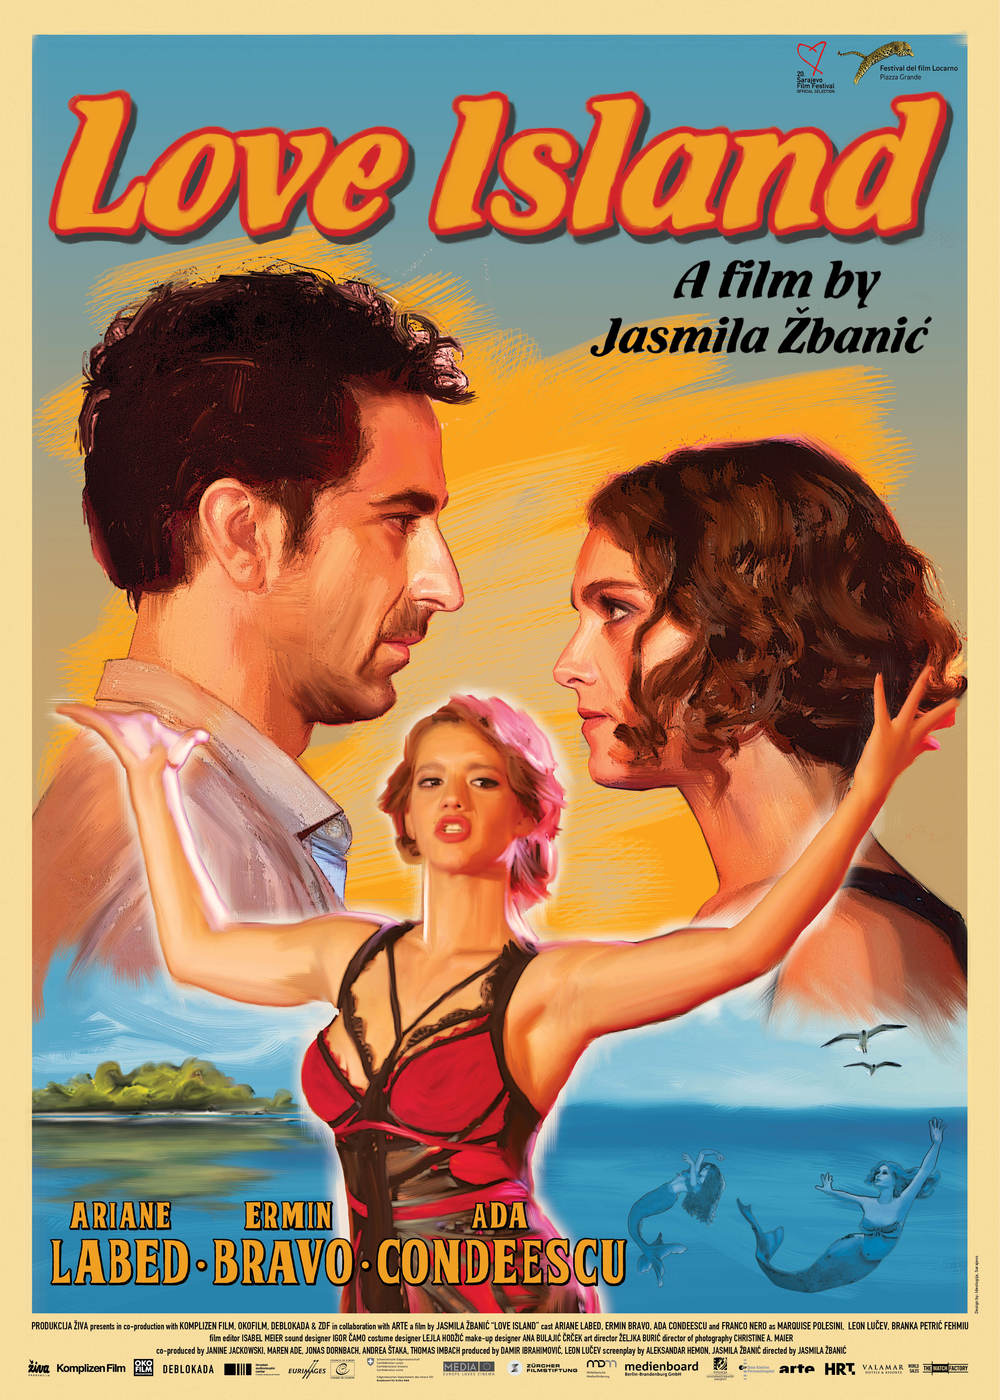 2014_Love_Island_Komplizen_Film.jpg